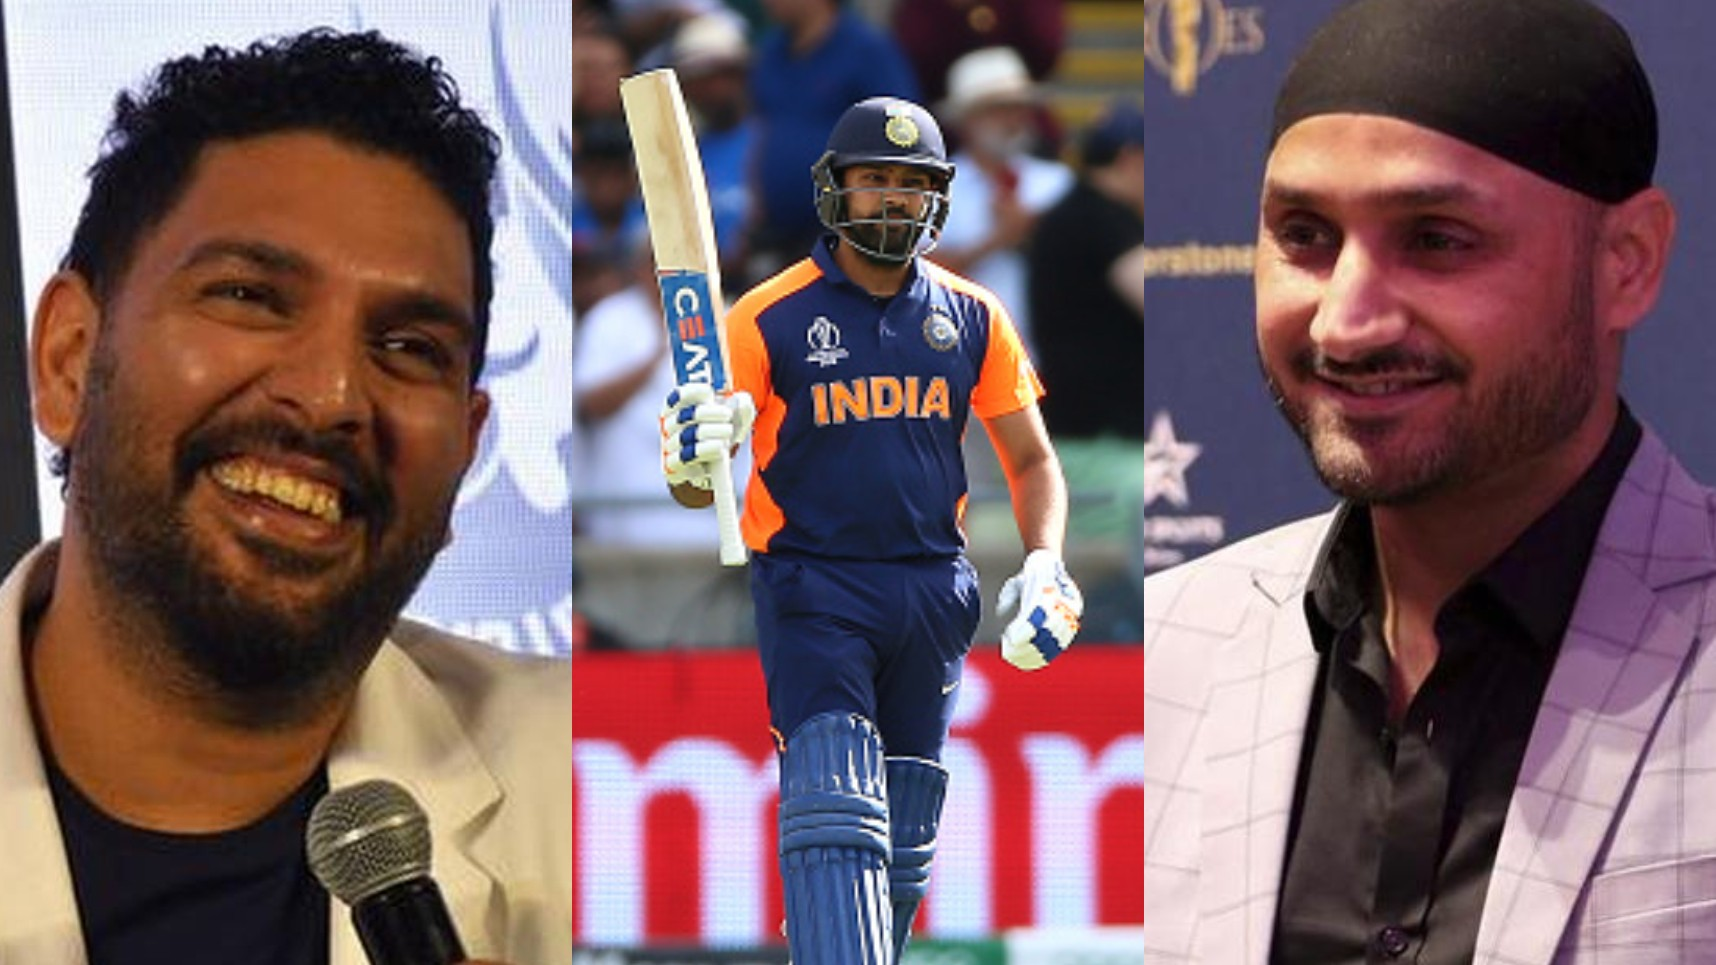 CWC 2019: Cricket fraternity cheers Rohit Sharma's third century in this World Cup